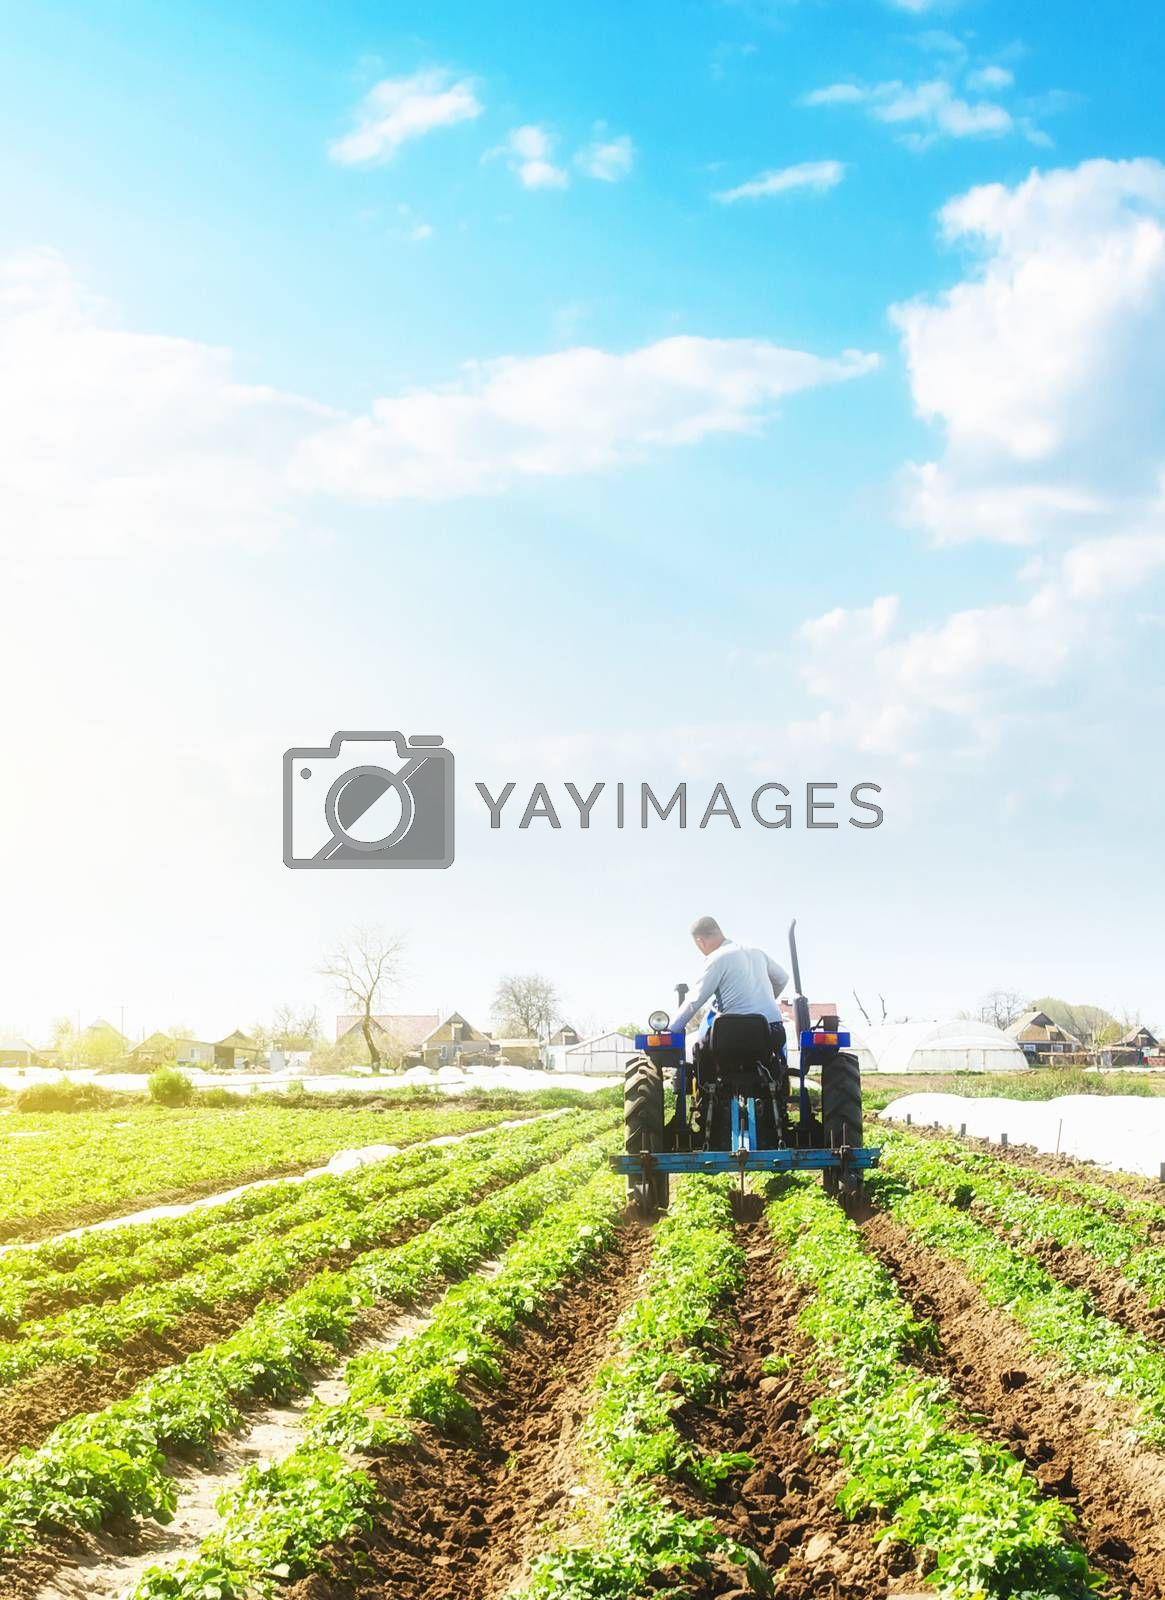 A farmer on a tractor loosens the soil and removes weeds on a potato plantation. Farming agricultural industry. Processing and cultivation of soil. The process of growing food on a farm. by iLixe48